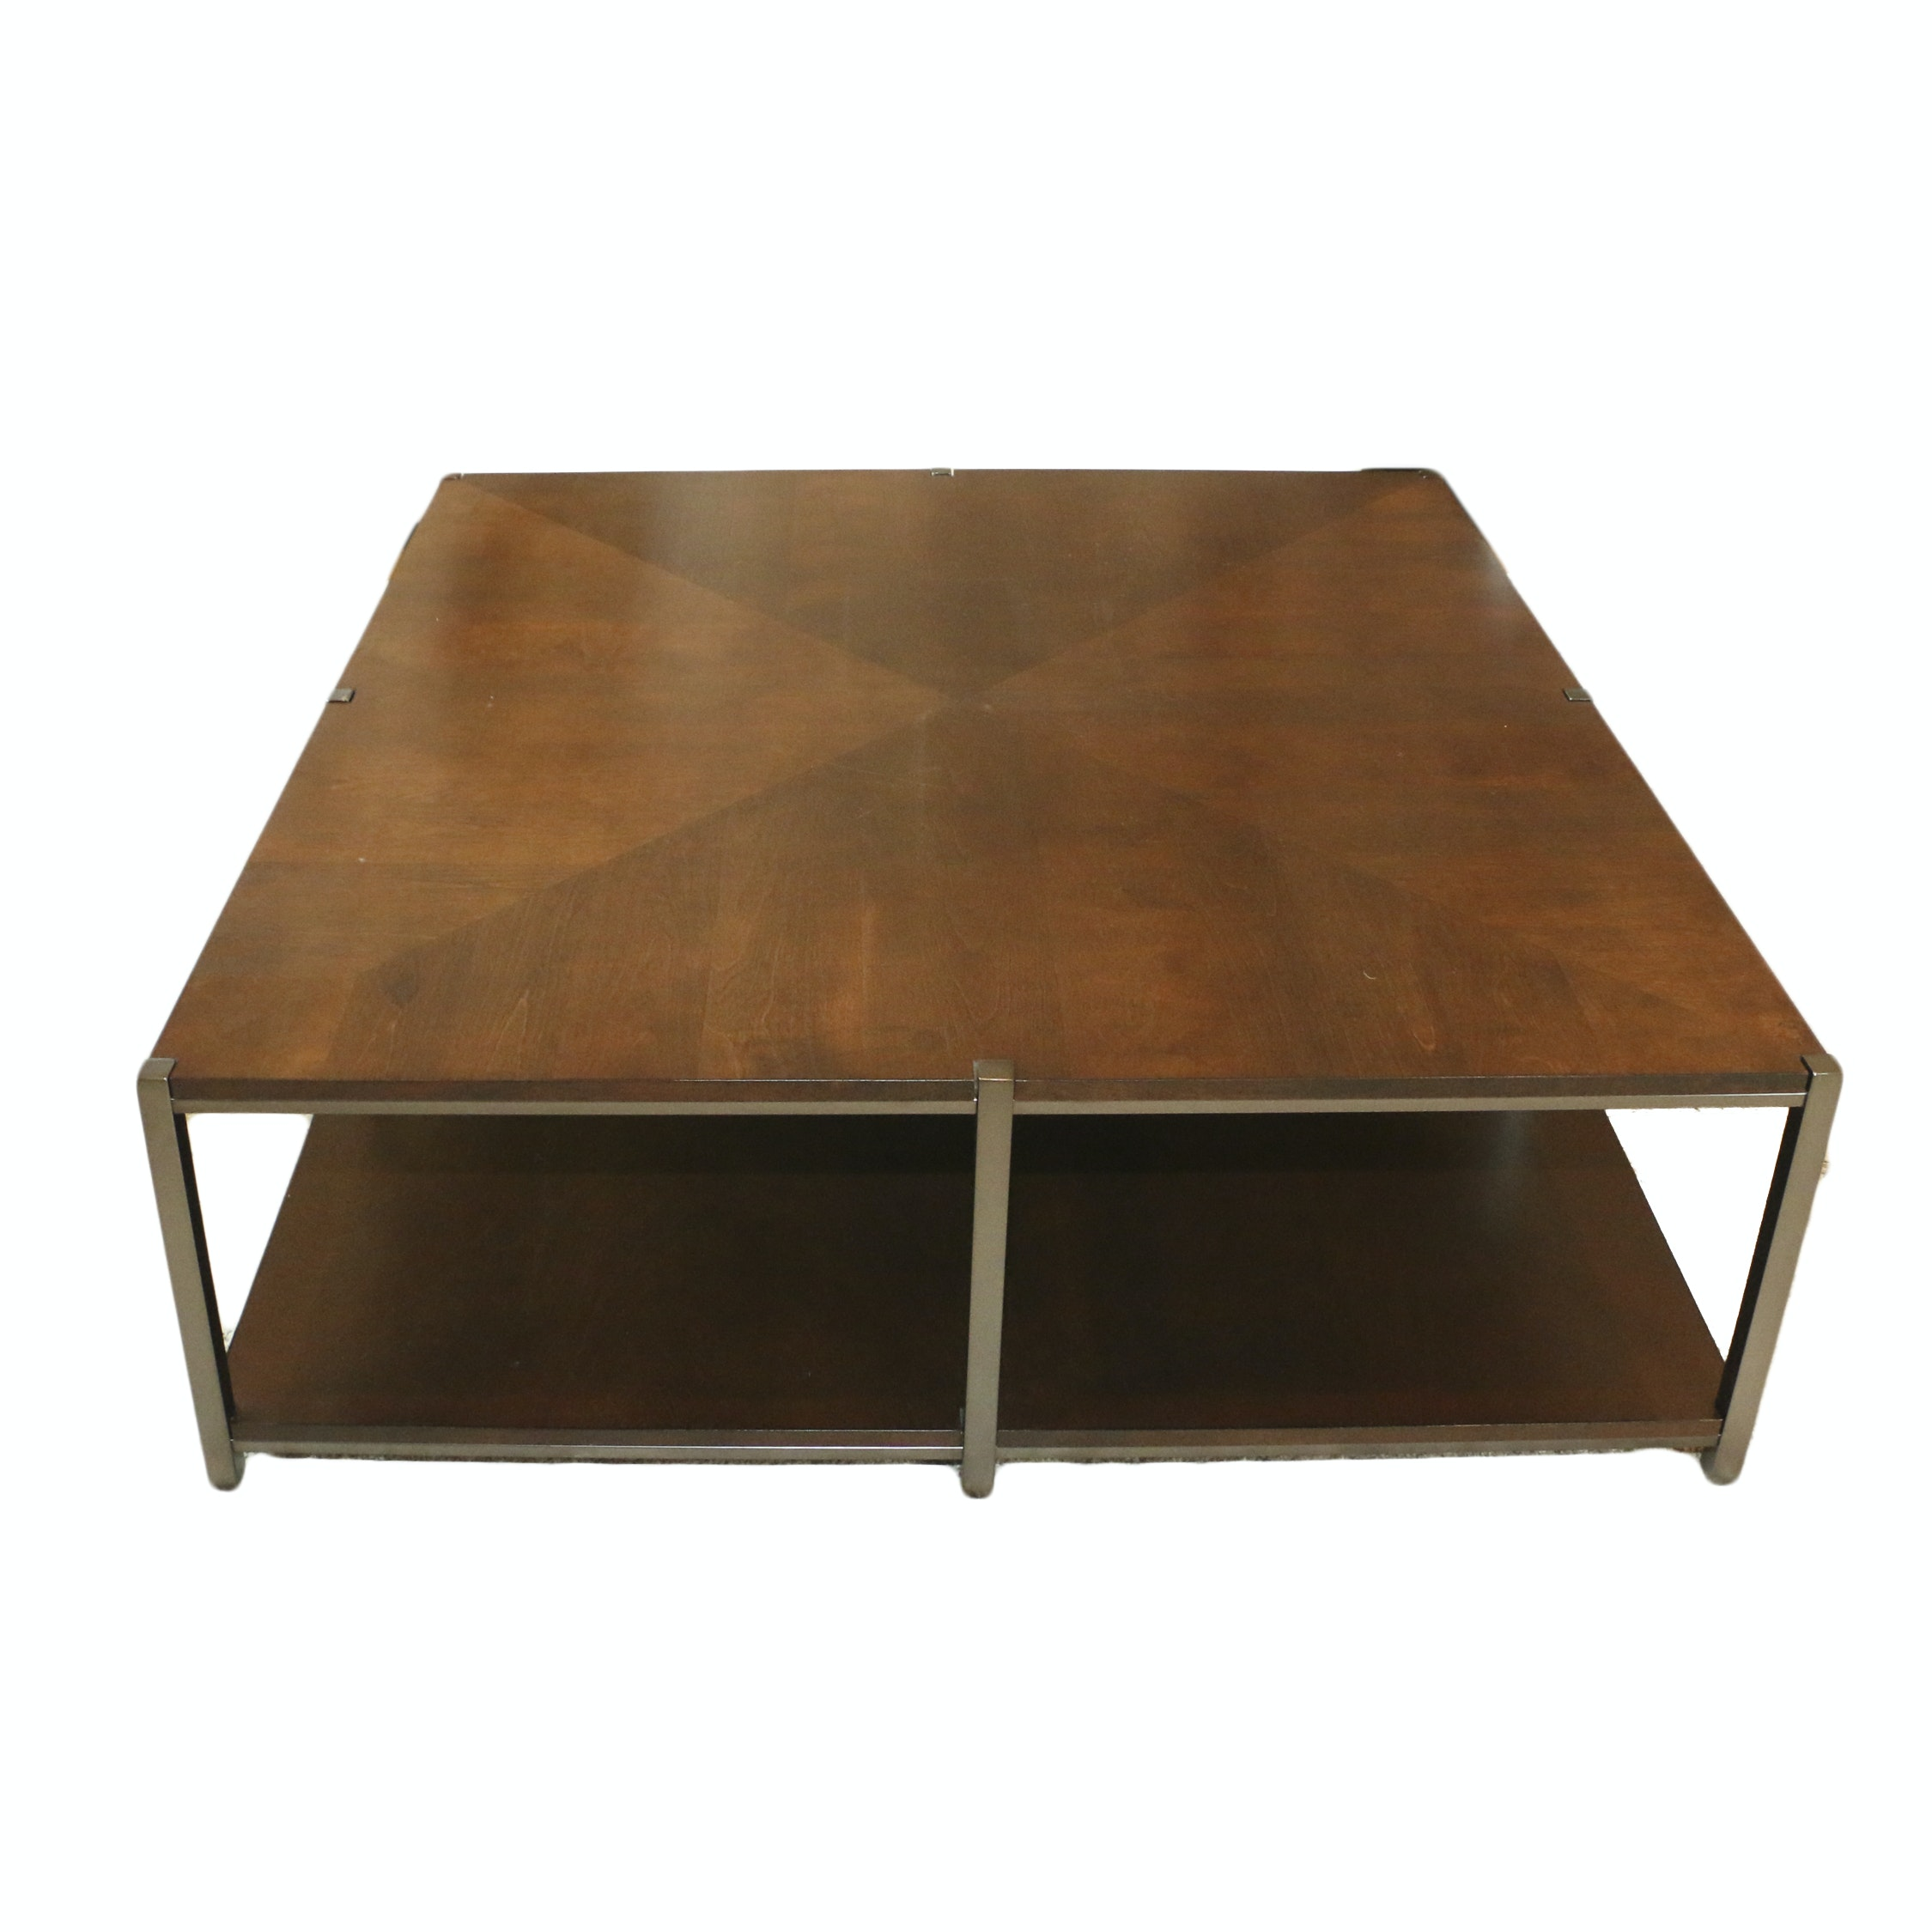 Two-Tier Wood and Metal Coffee Table, 21st Century